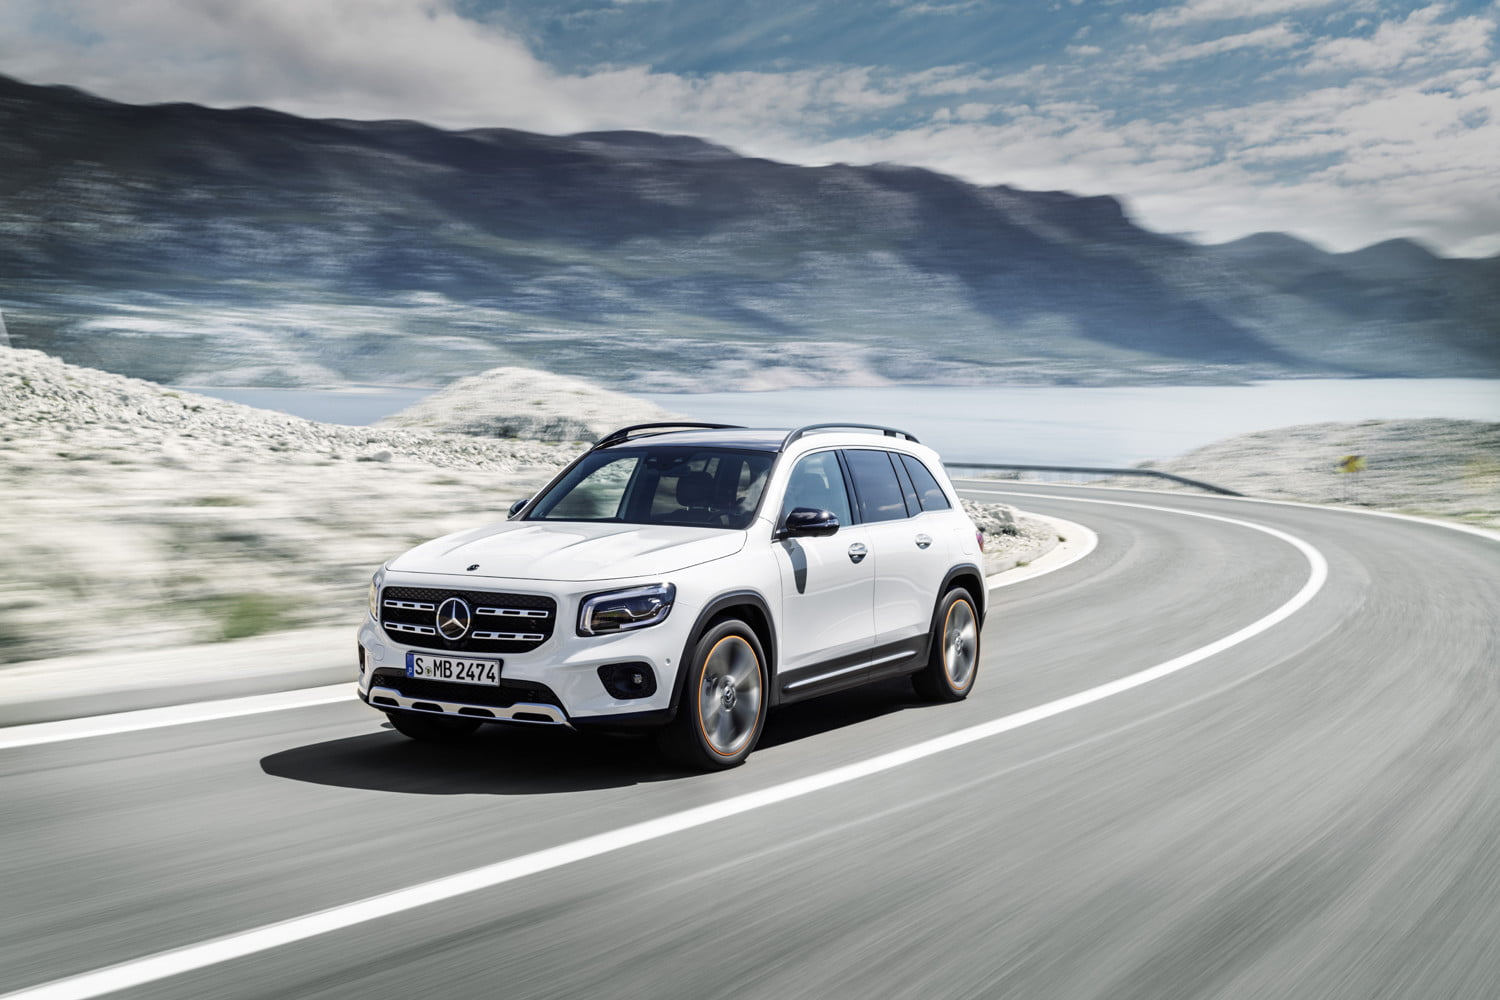 The 2020 Mercedes-Benz GLB